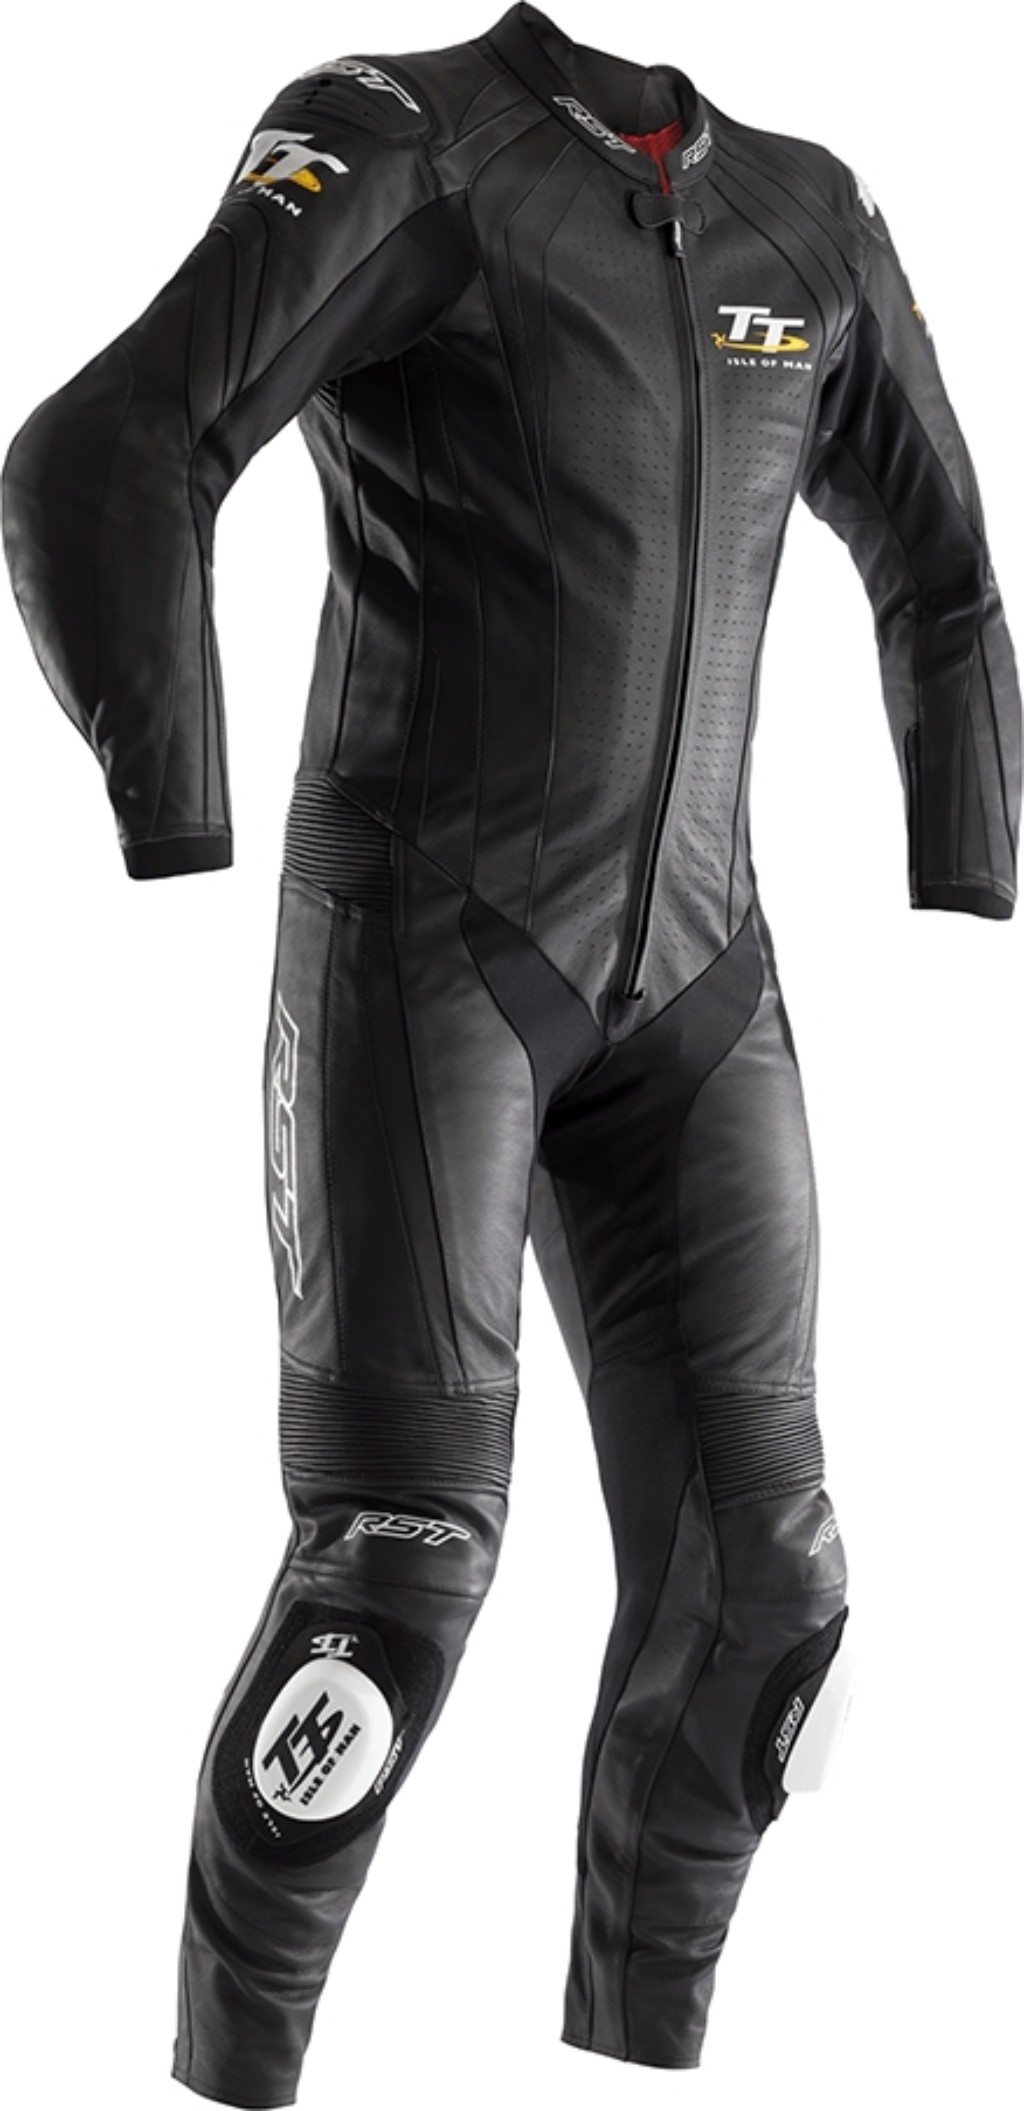 RST IOM TT Grandstand Leather One Piece Suit레이싱 슈트